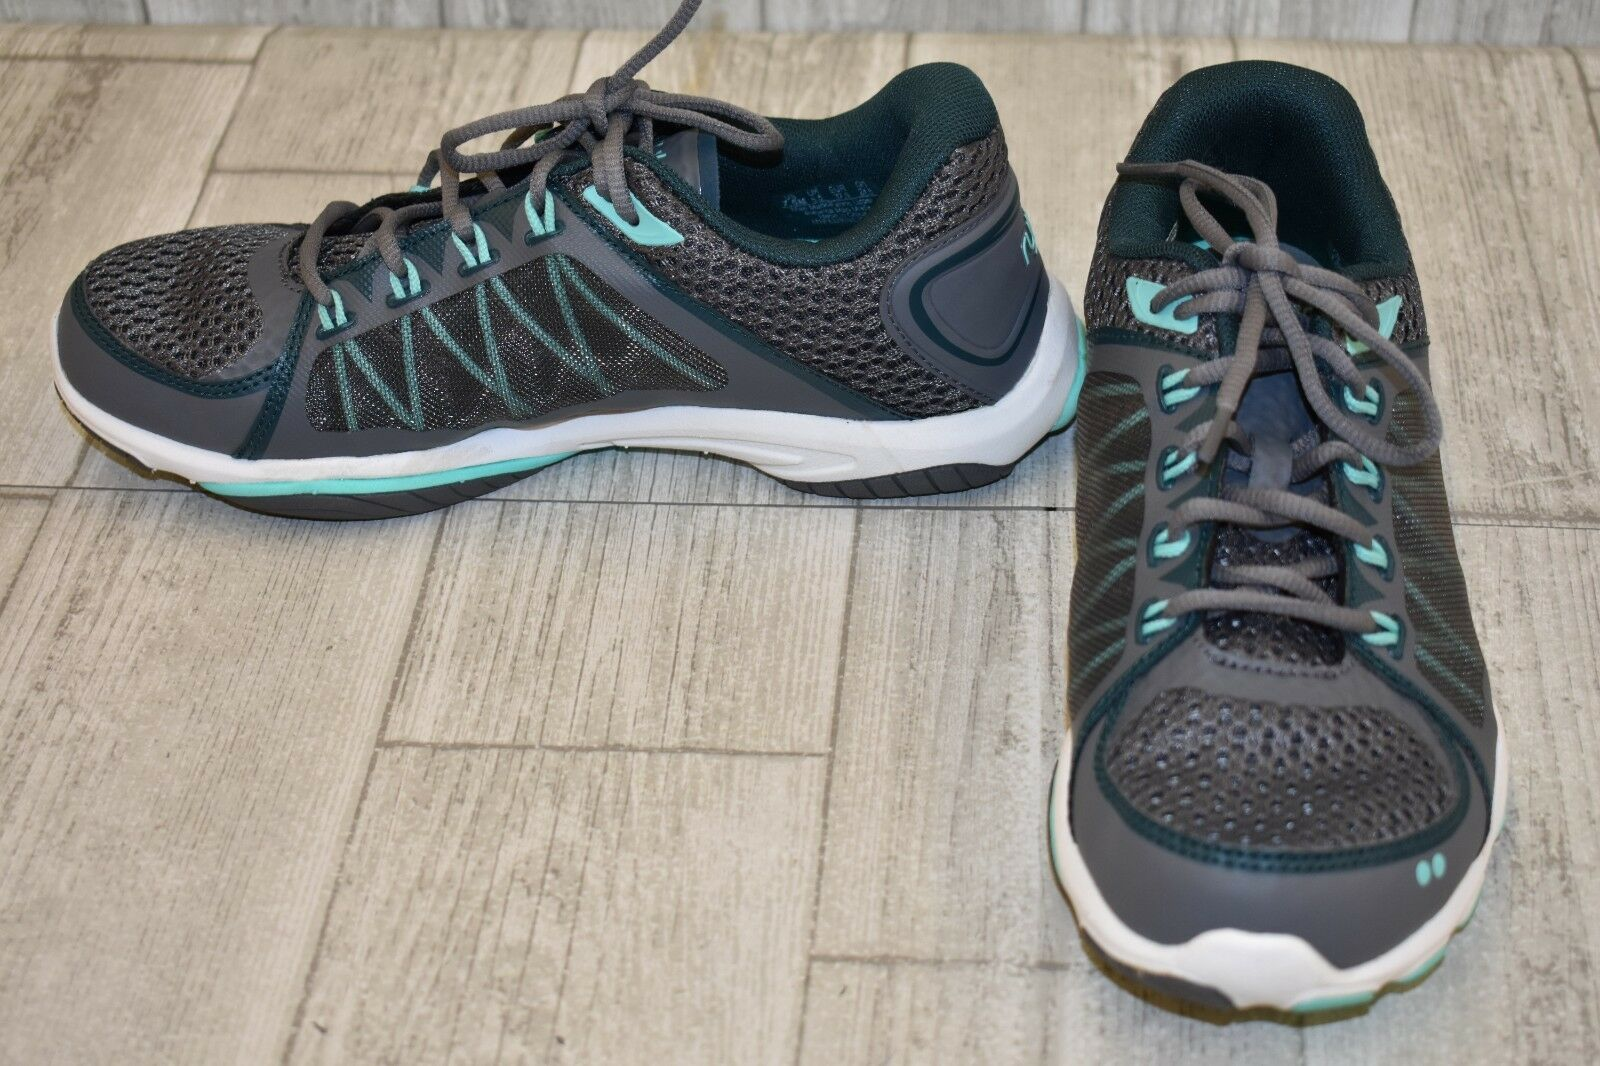 Ryka Influence 2.5 Running shoes, Women's Size 7.5M, Grey Teal